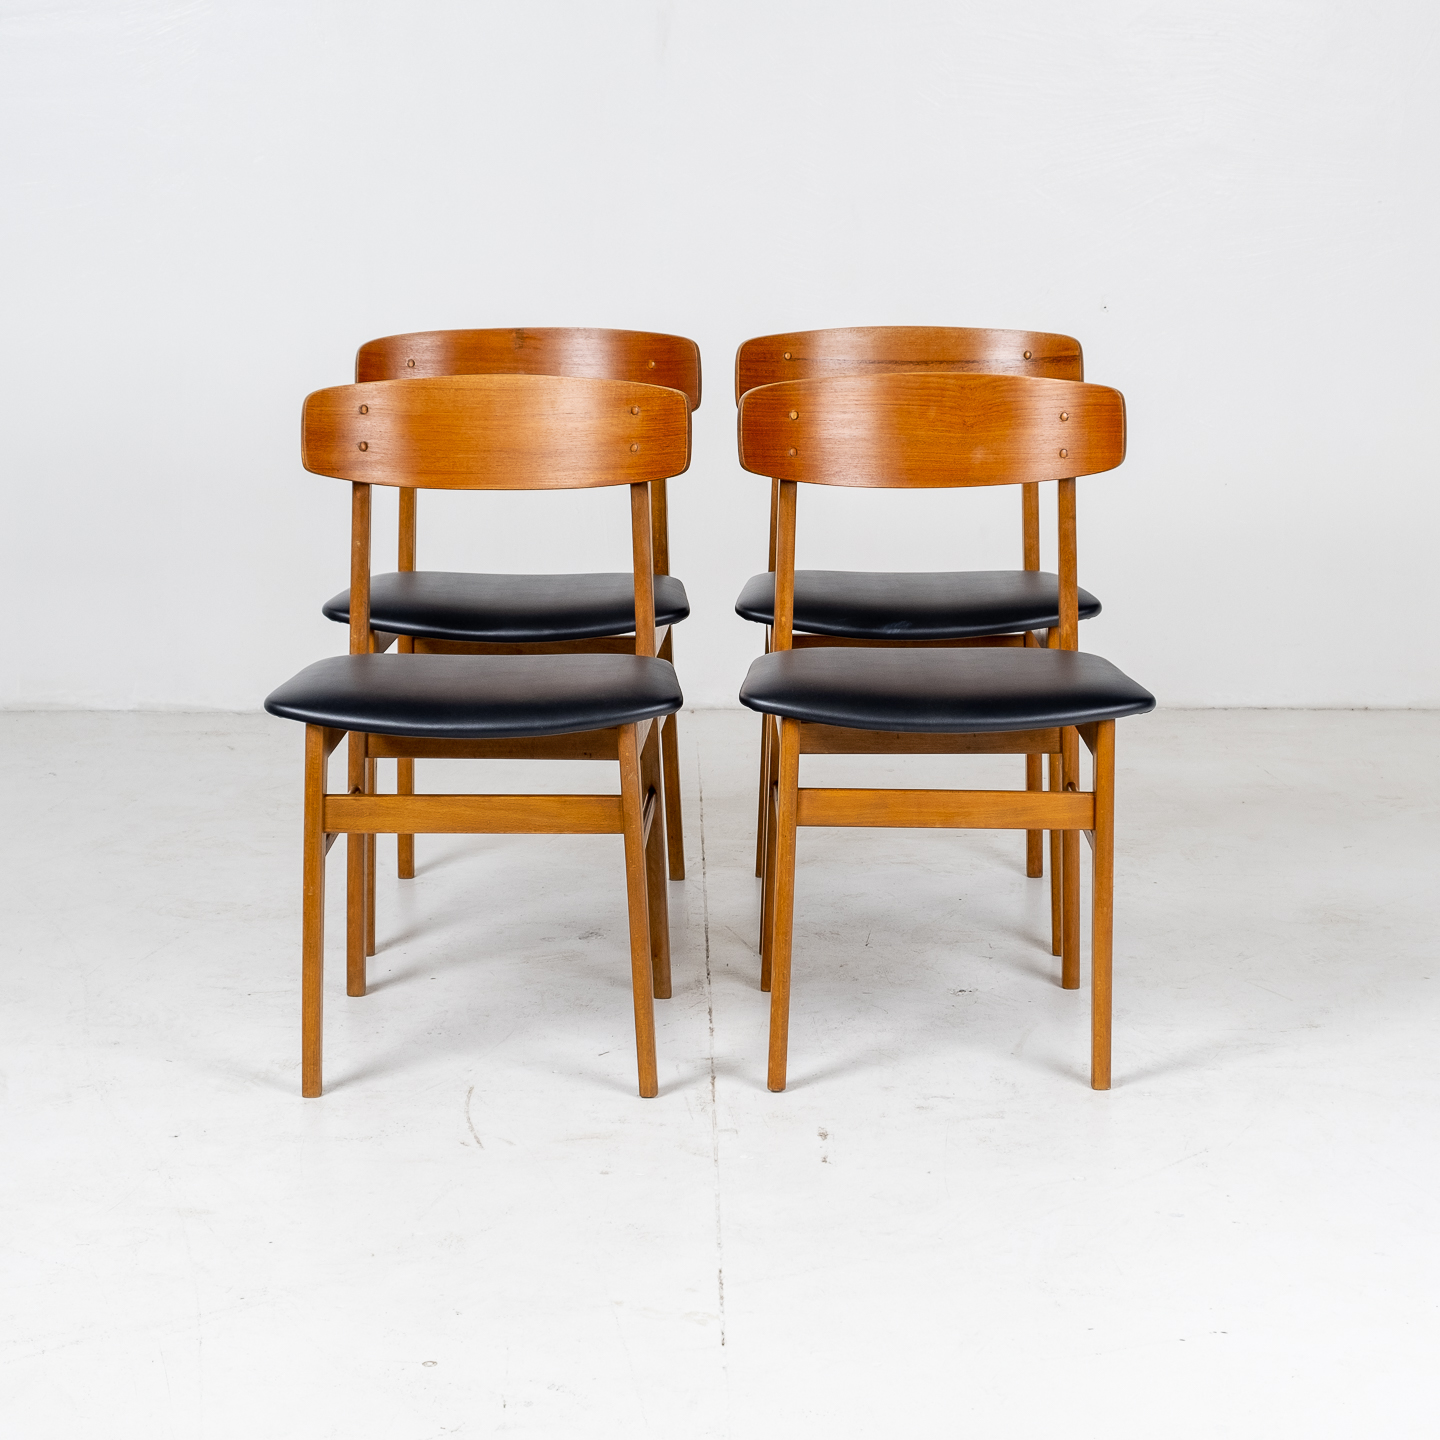 Set Of Four Square Back Dining Chairs By Fastrup In Teak, 1960s, Denmark05